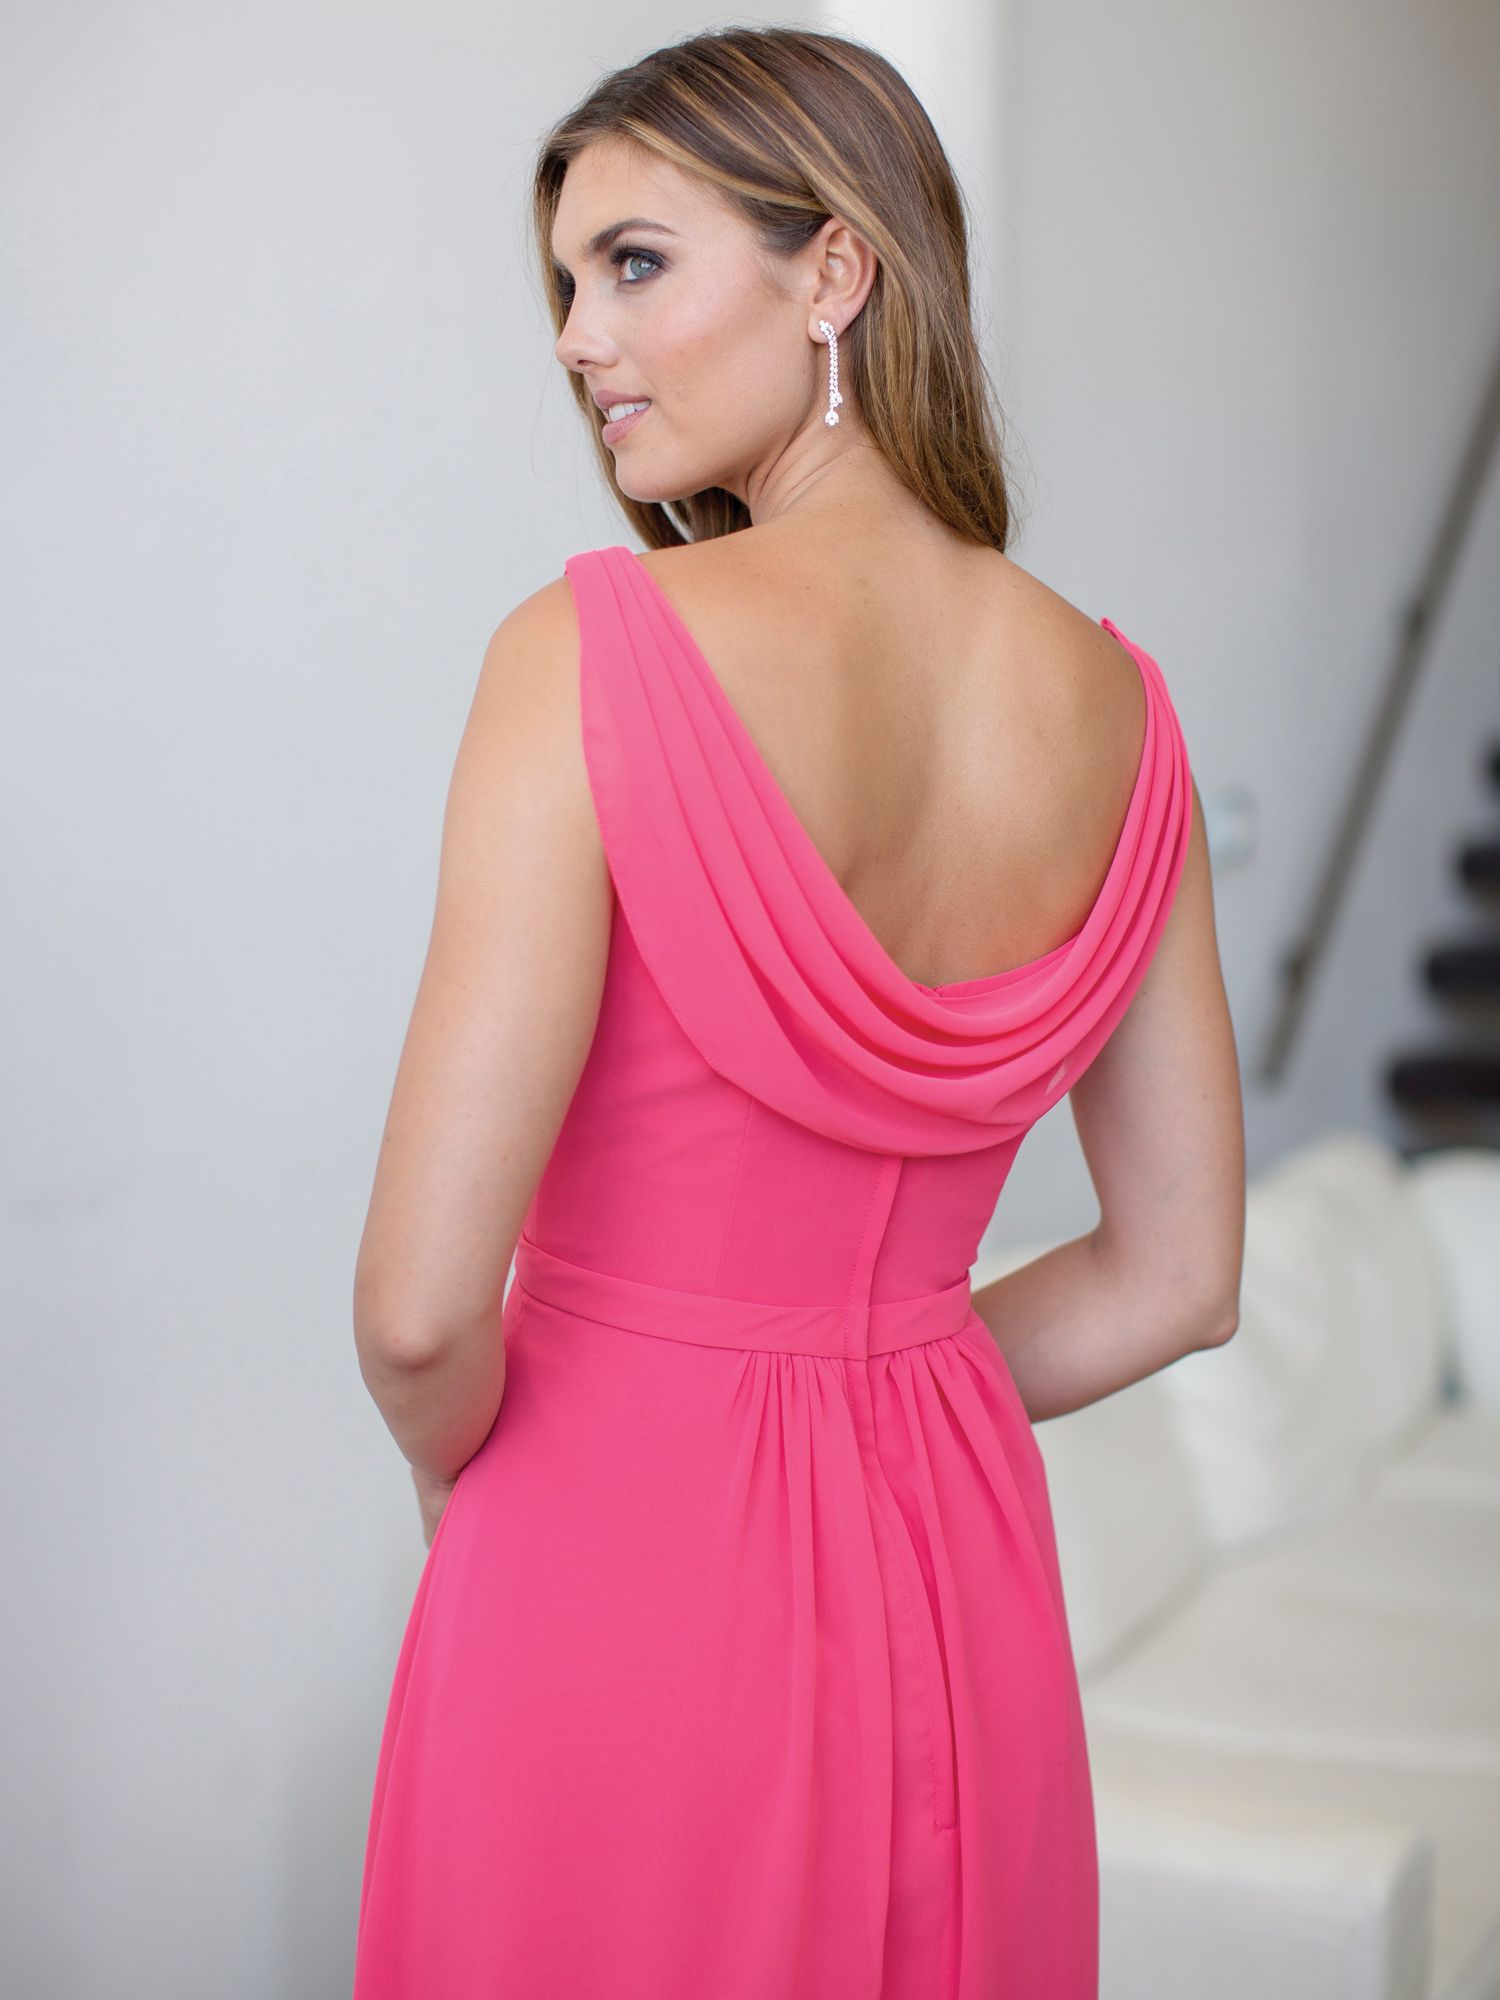 Colour by kenneth winston style dresses can be modified to